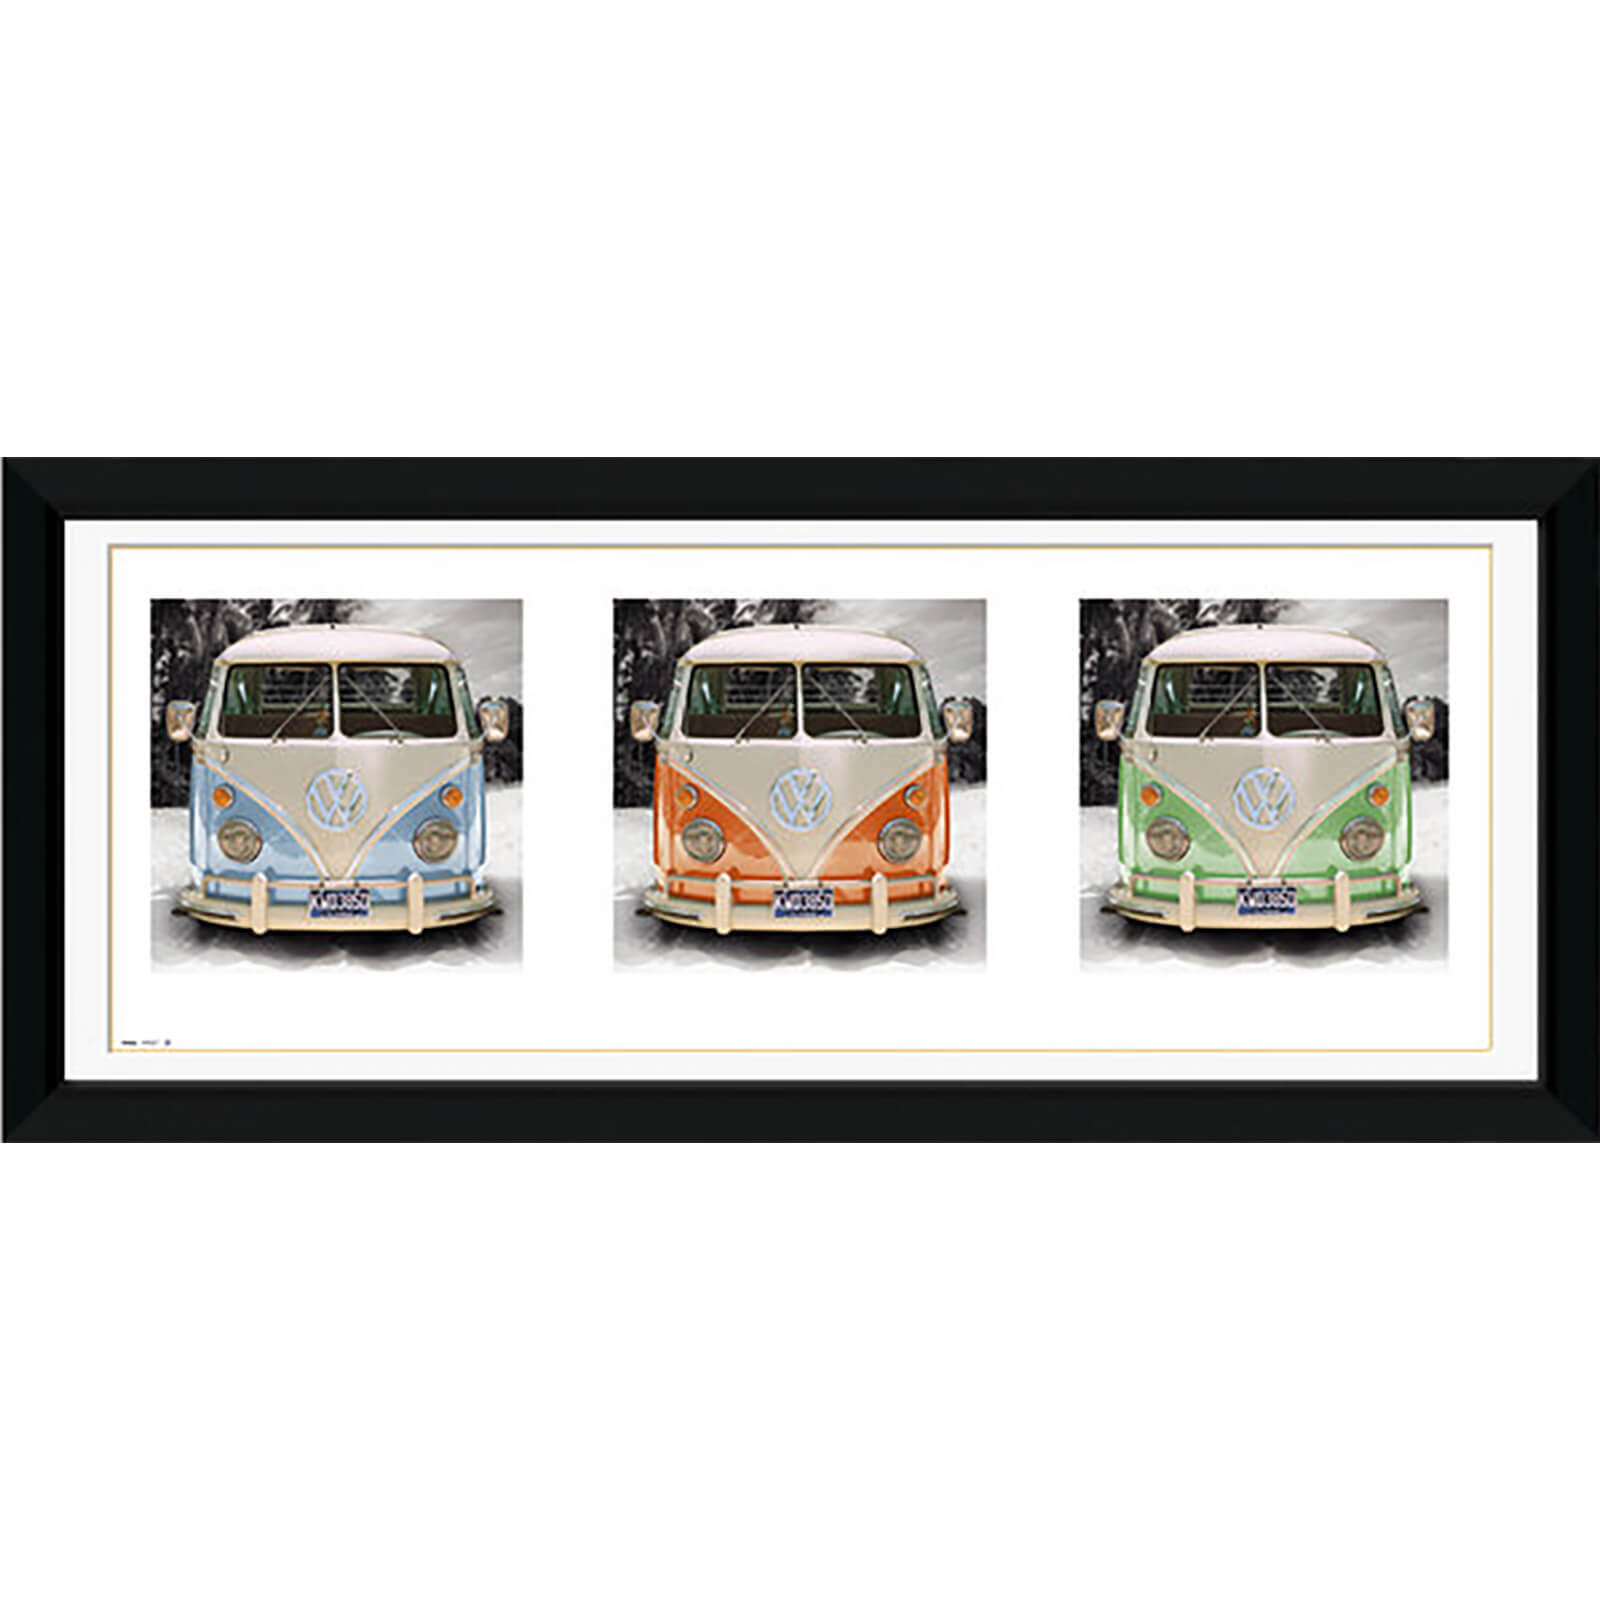 "VW Californian Camper Triptych - 30"""" x 12"""" Framed Photographic"